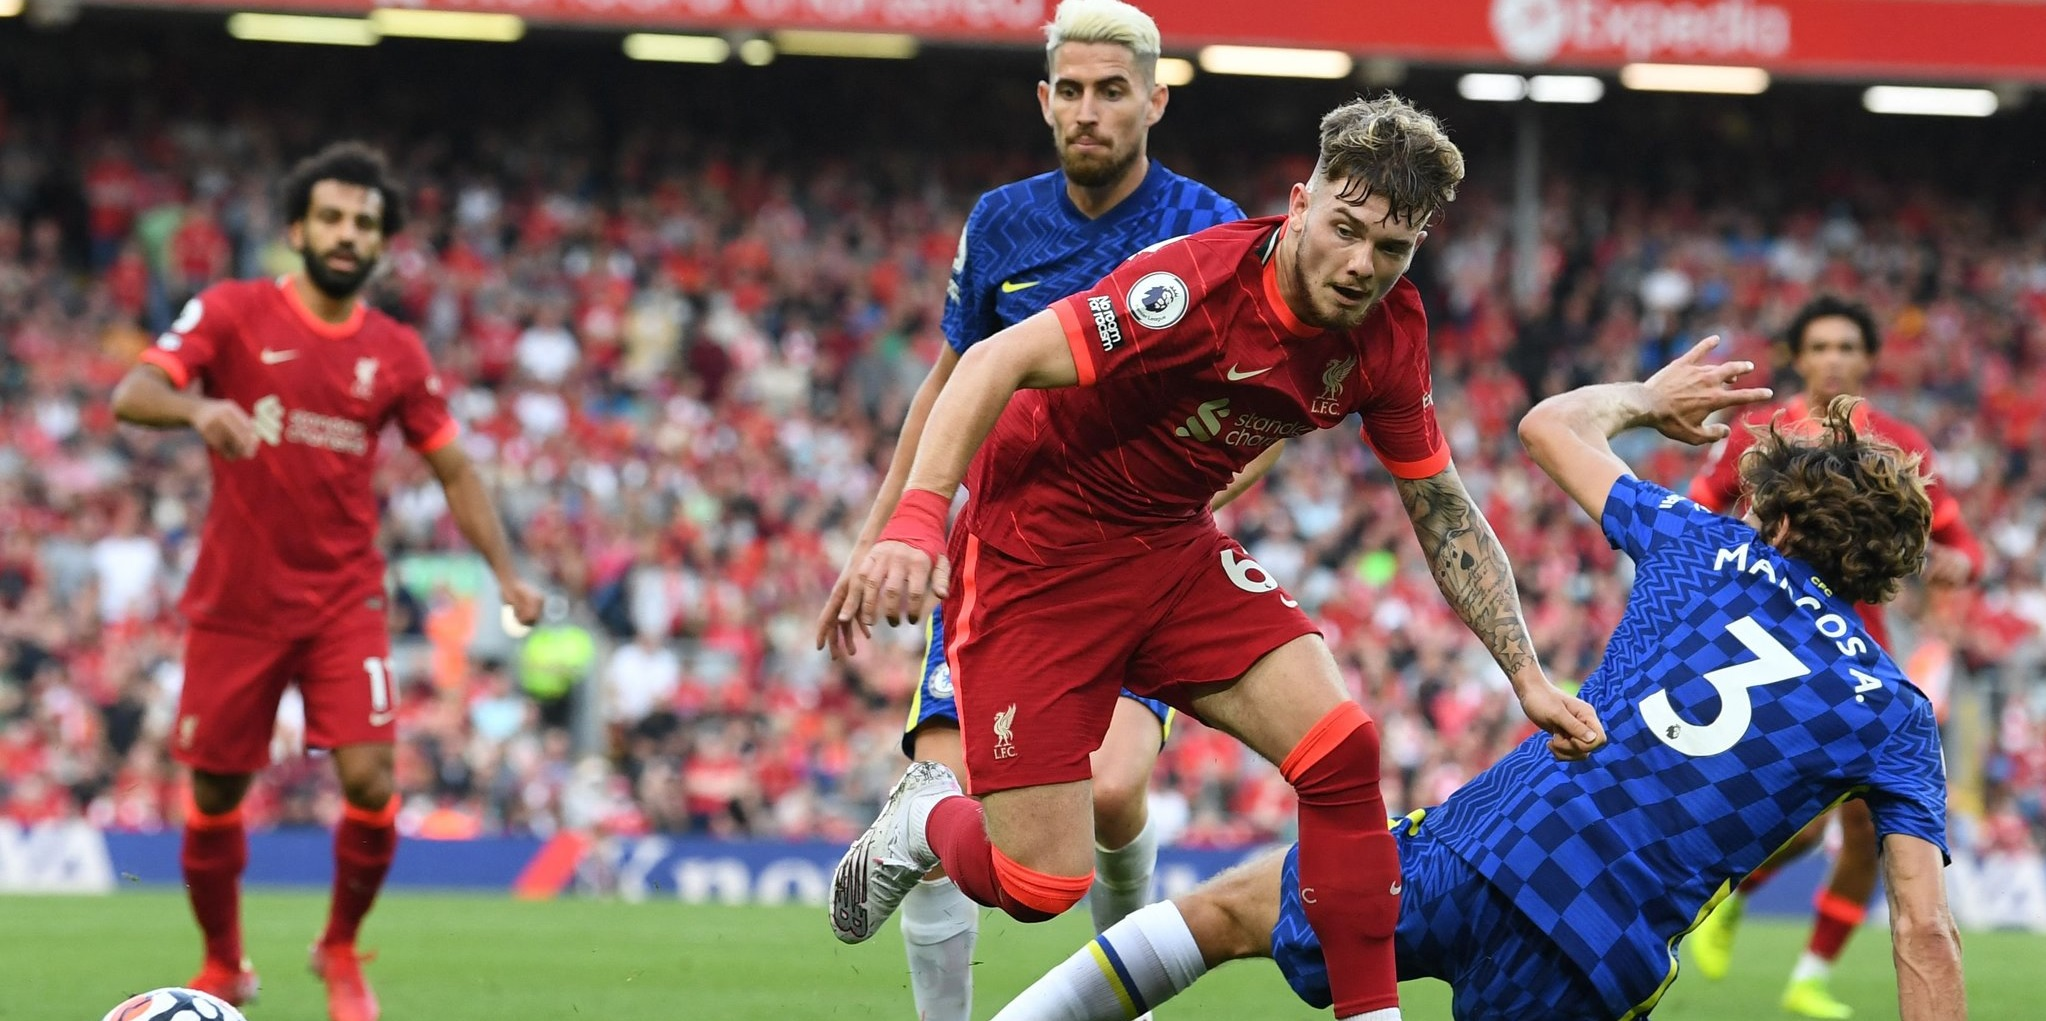 Arsenal legend compares Liverpool star to Messi: 'He's a real talent'